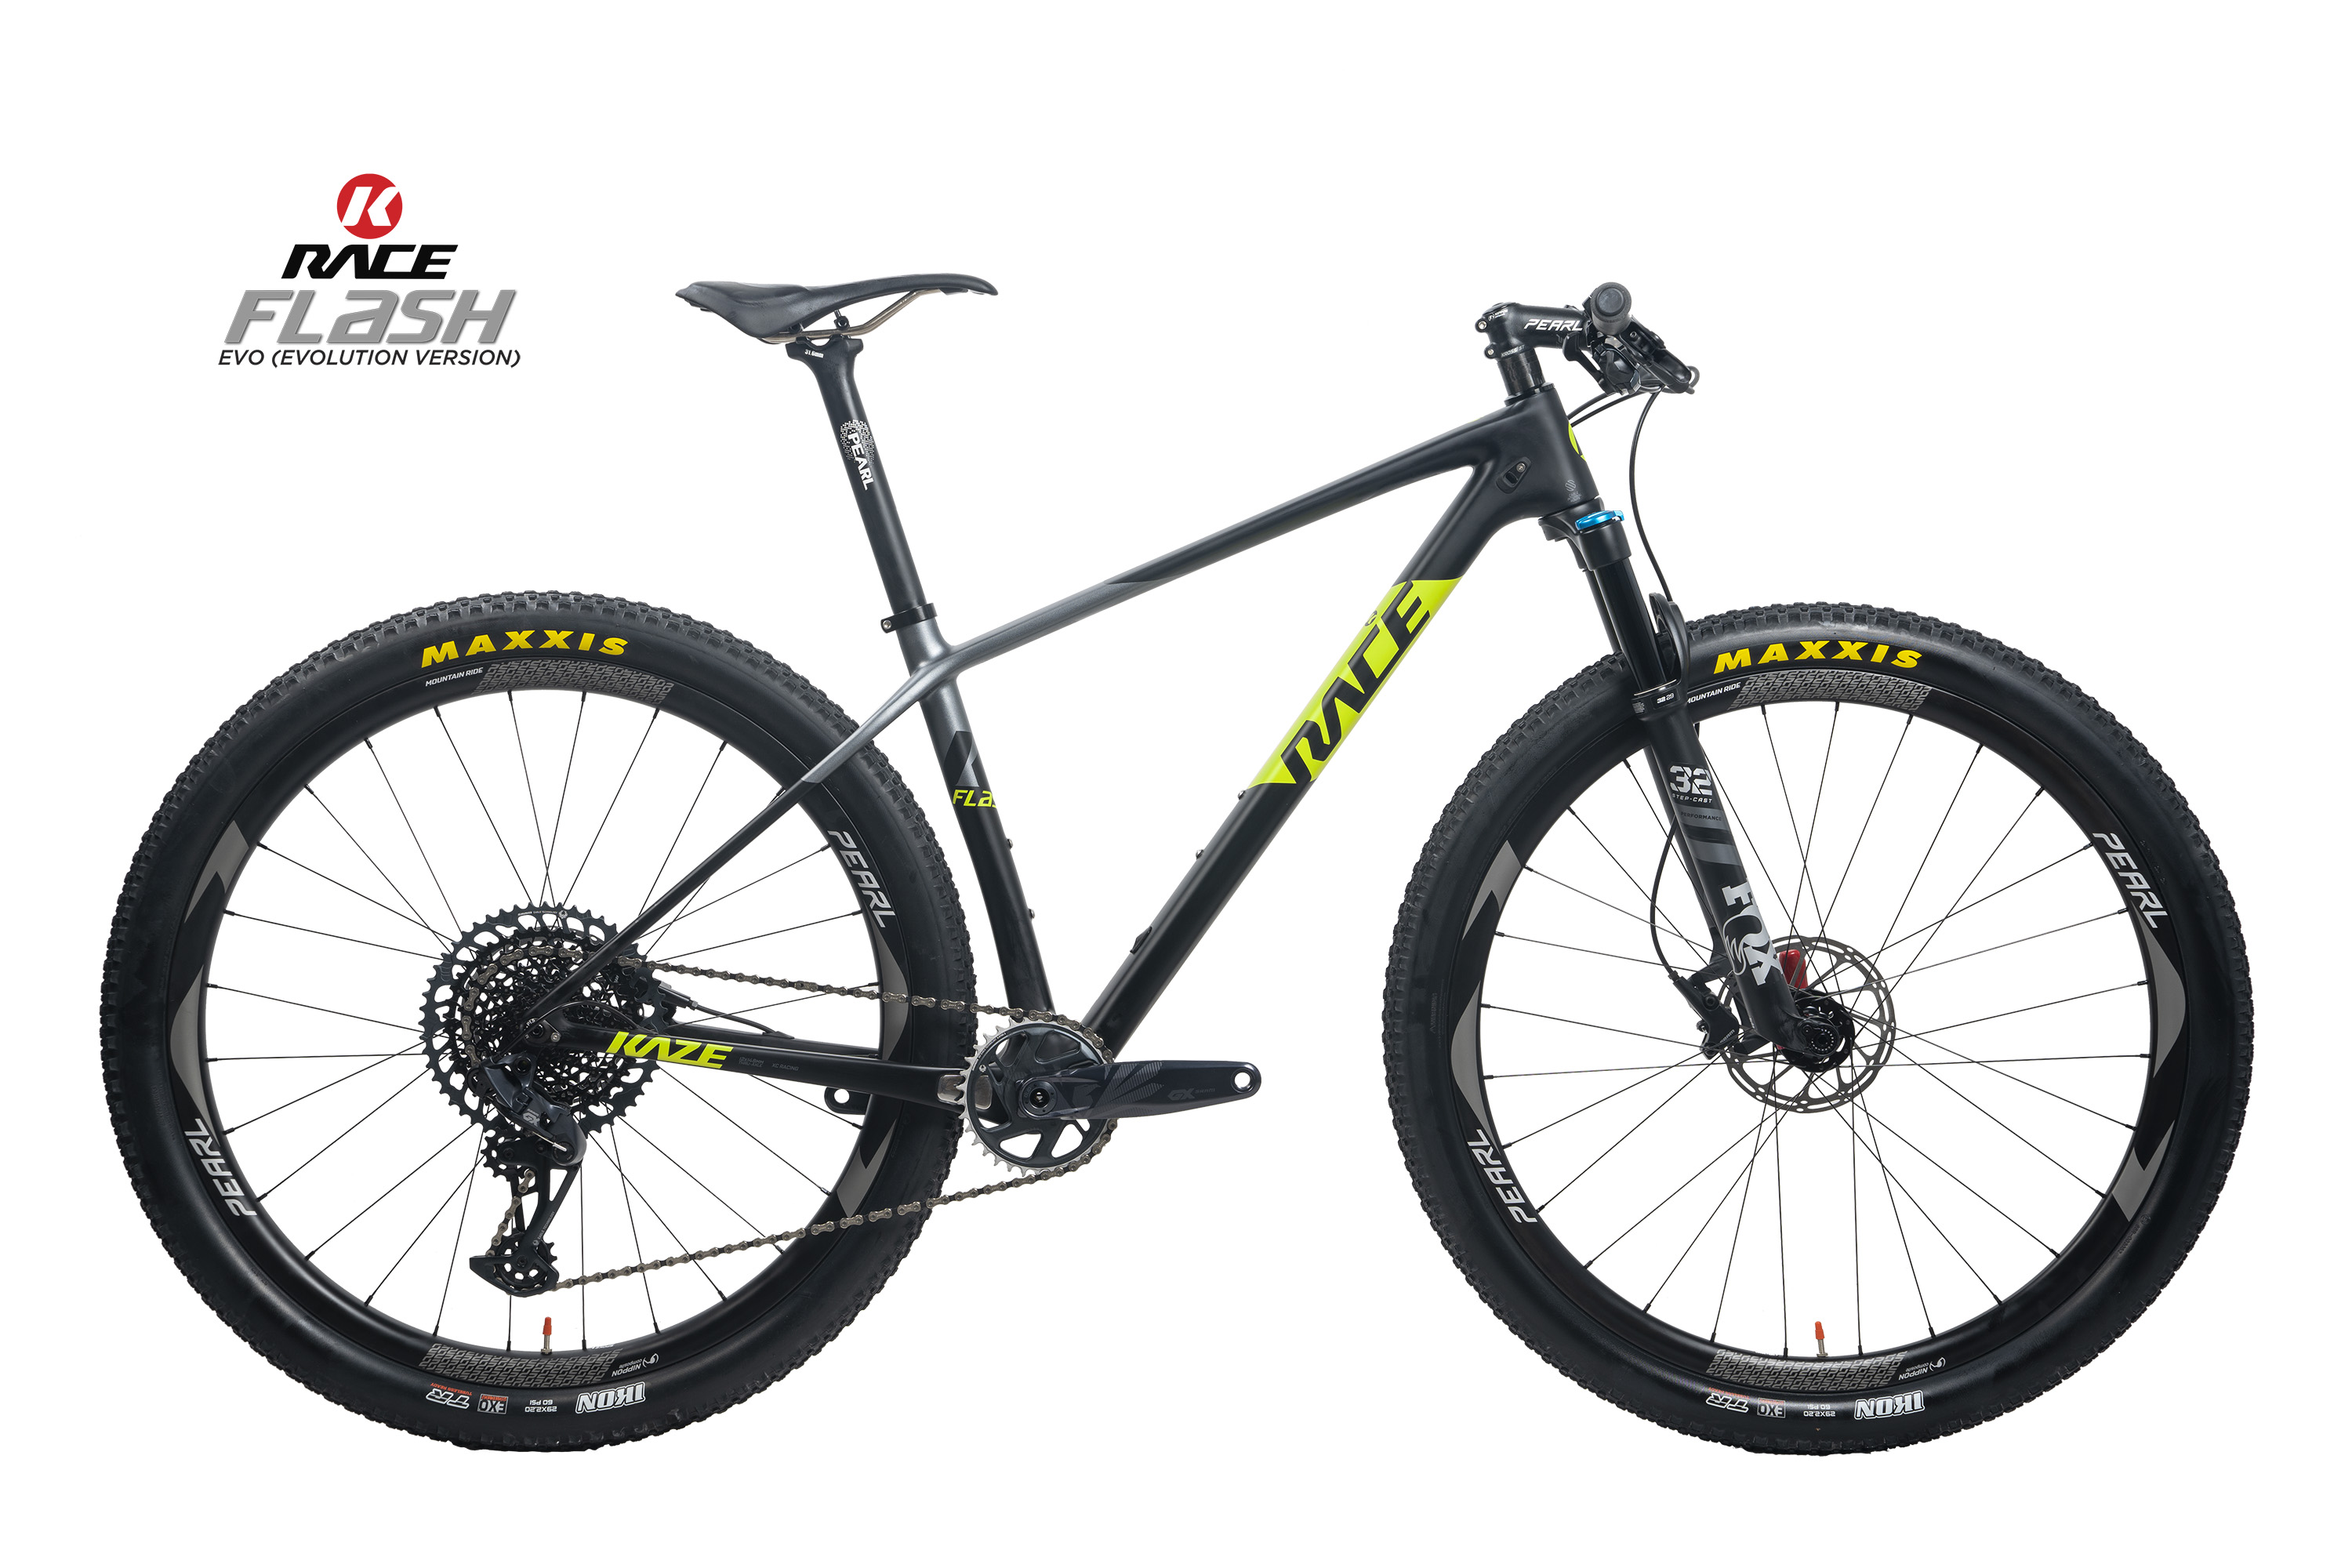 KAZE RACE | FLASH 29er EVO (Evolution version) 2021